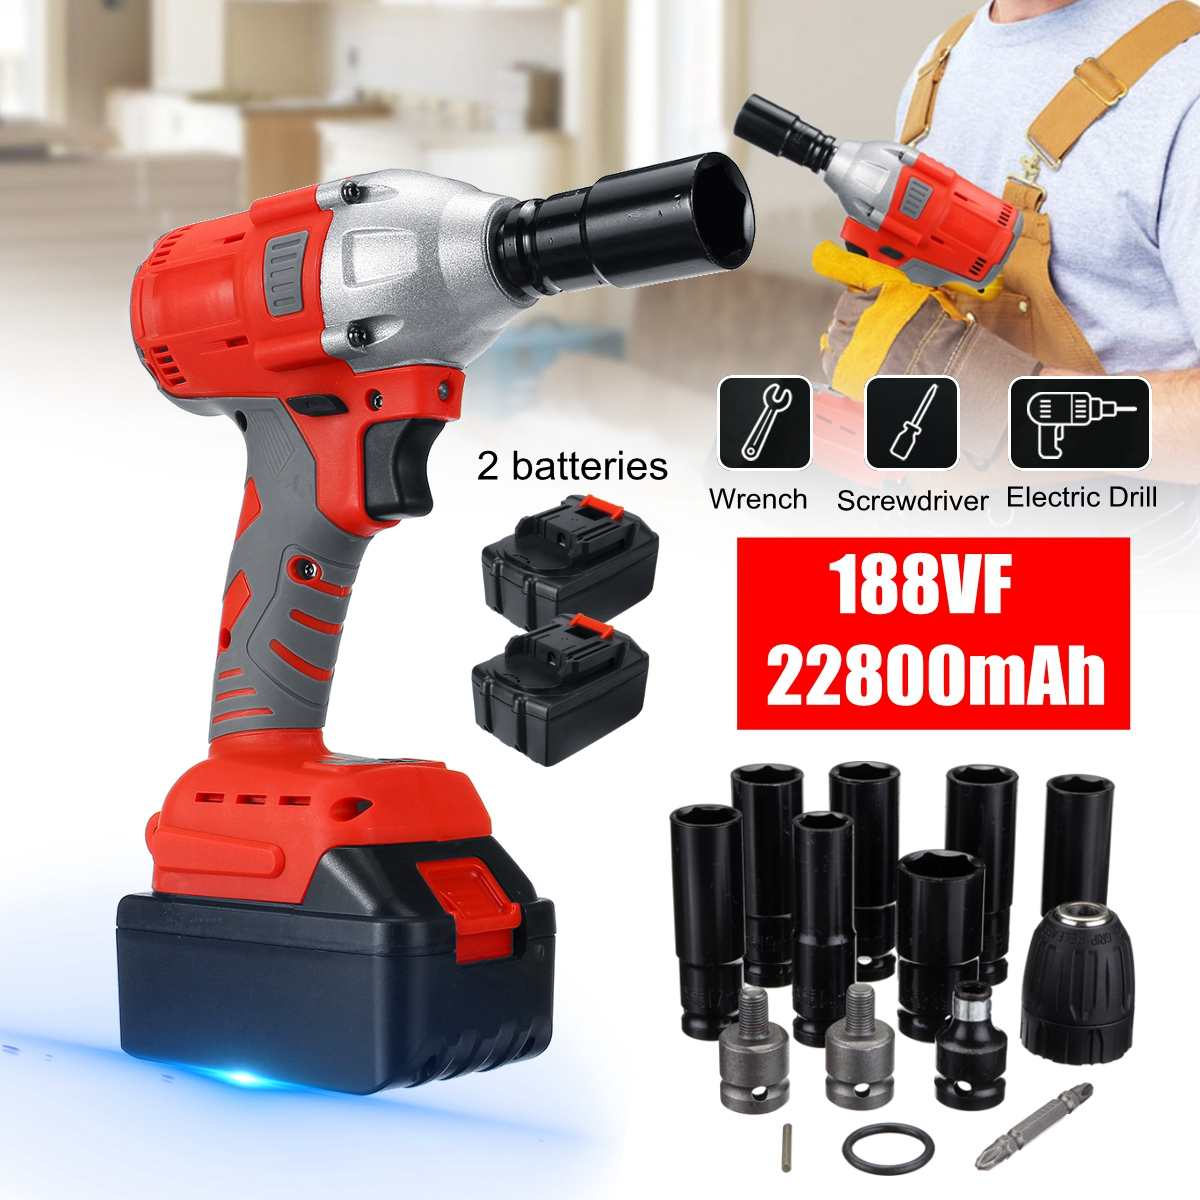 128VF/188VF Rechargeable Electric Cordless Impact Drill Driver Kit Powerful Combo Kits Screwdriver Power tools with 1/2 battery